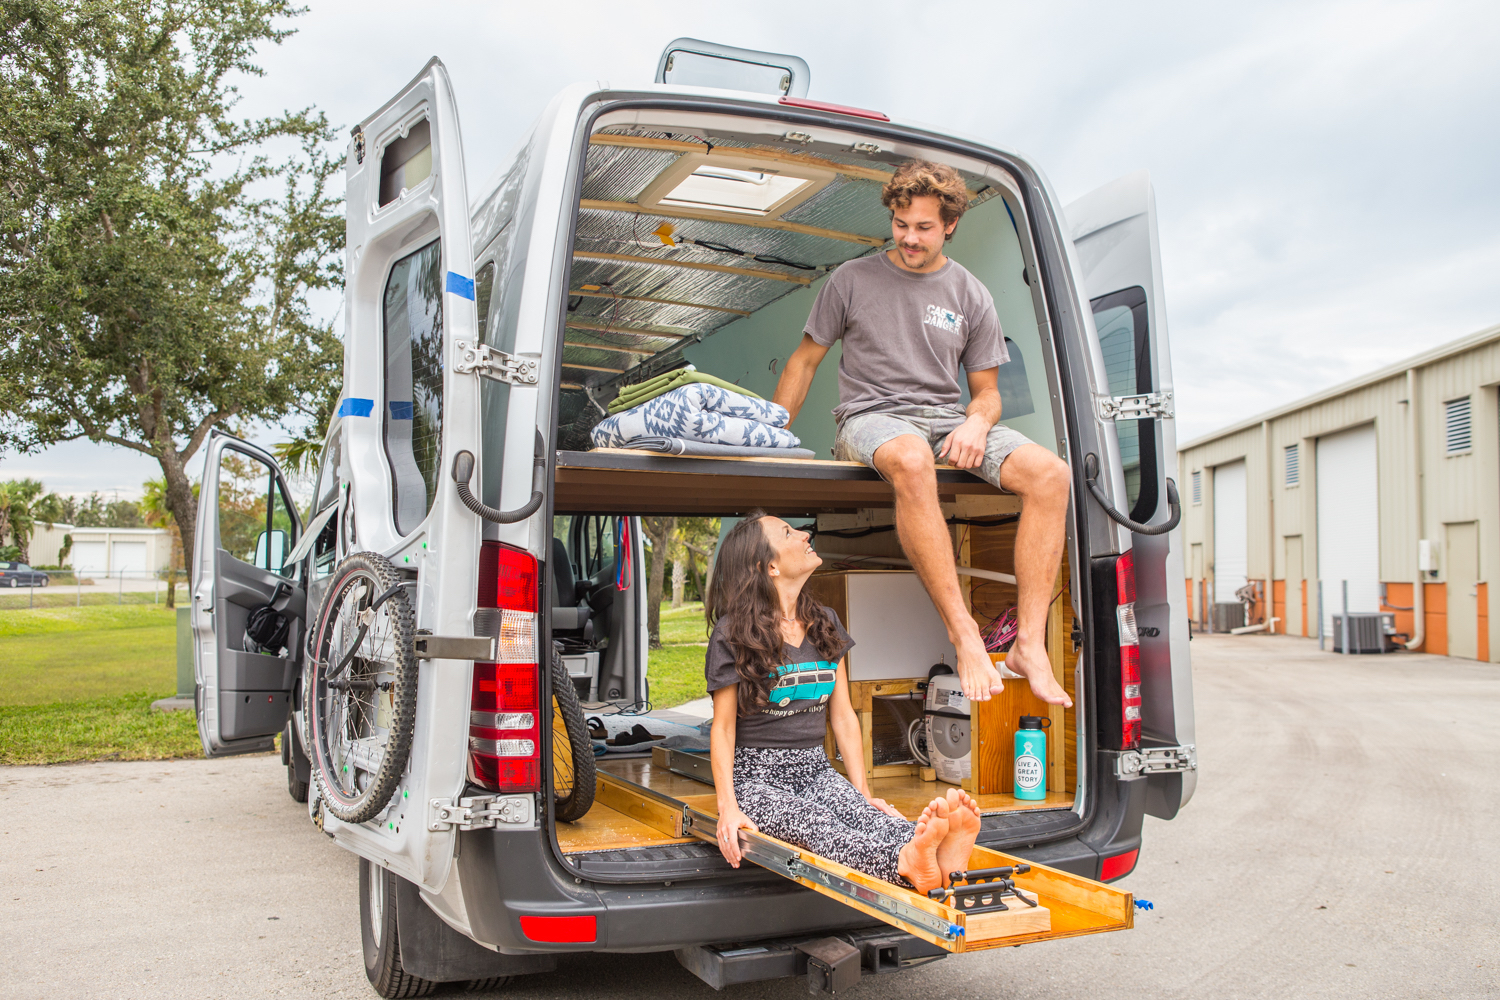 7 Ways We're Upgrading Our Vanlife